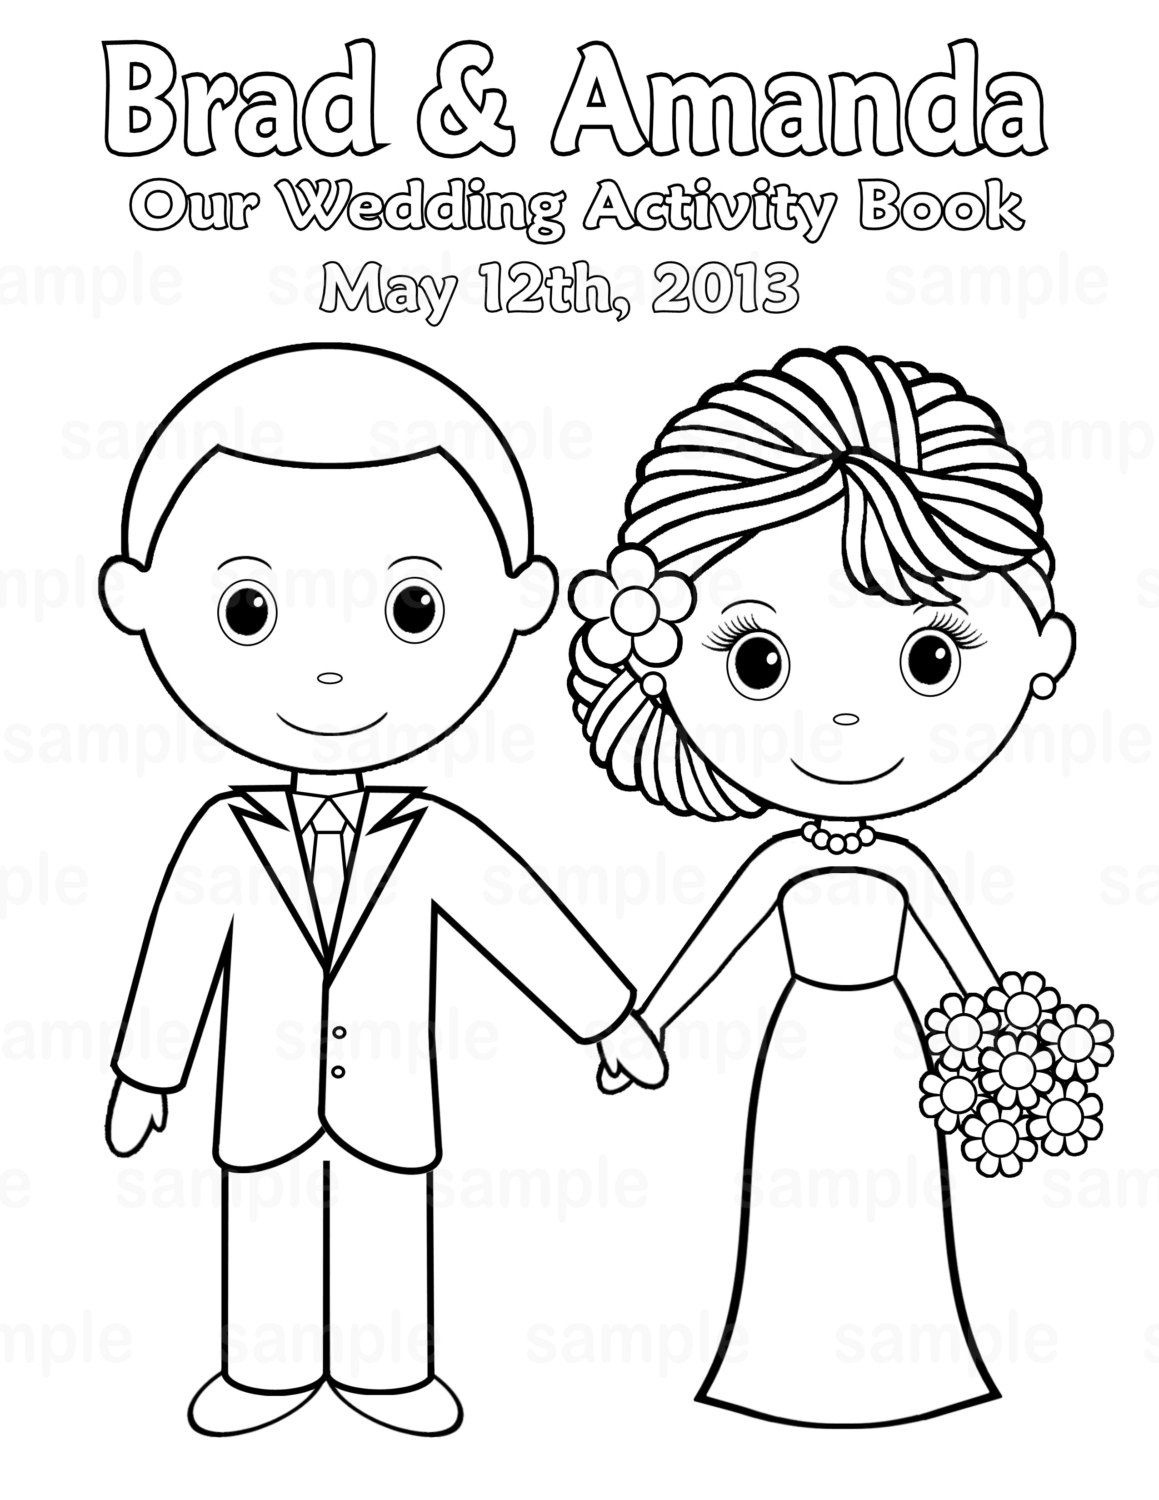 Free Printable Coloring Pictures Wedding | Printable Personalized - Free Printable Personalized Wedding Coloring Book